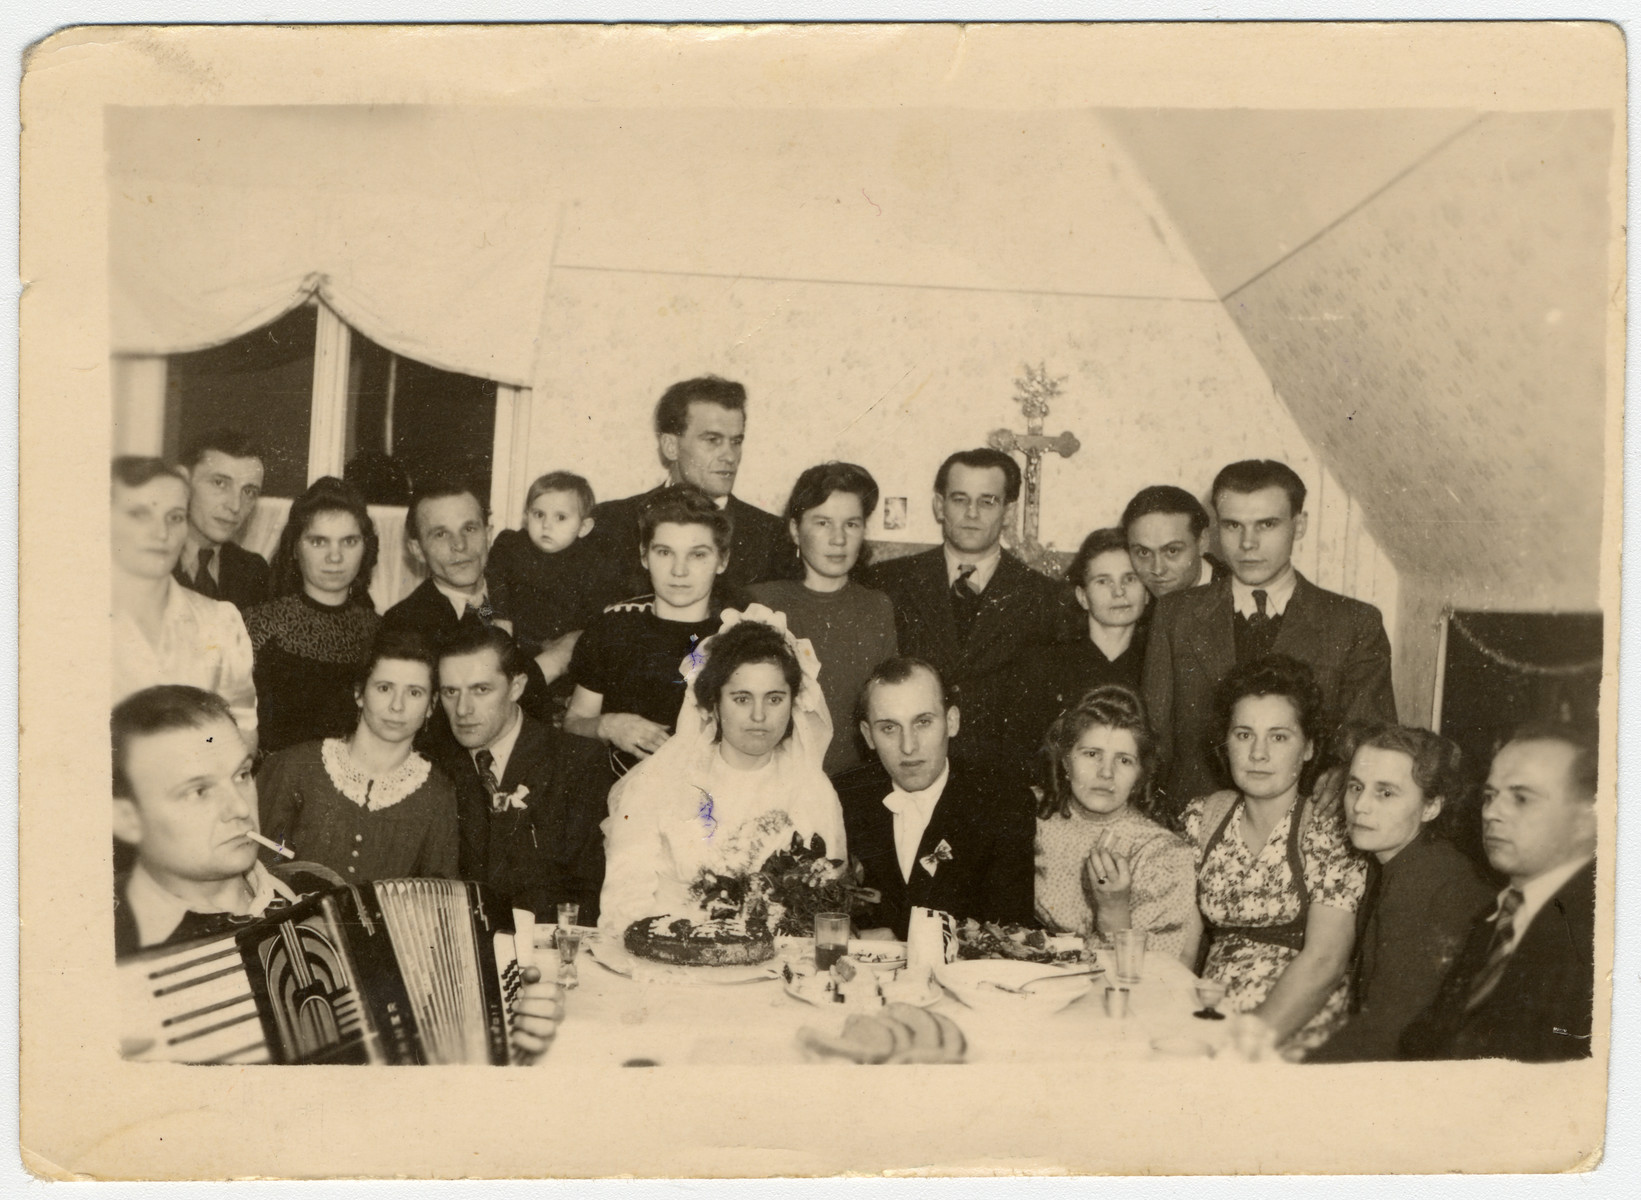 Wedding celebration of Maria Pedrycz and Jan Kowalski     Irena Wójcik (Irene Wojtas) is seated next to the groom; her future husband Eugeniusz (Eugene) Wojtas, is standing in the back row, directly behind the bride.